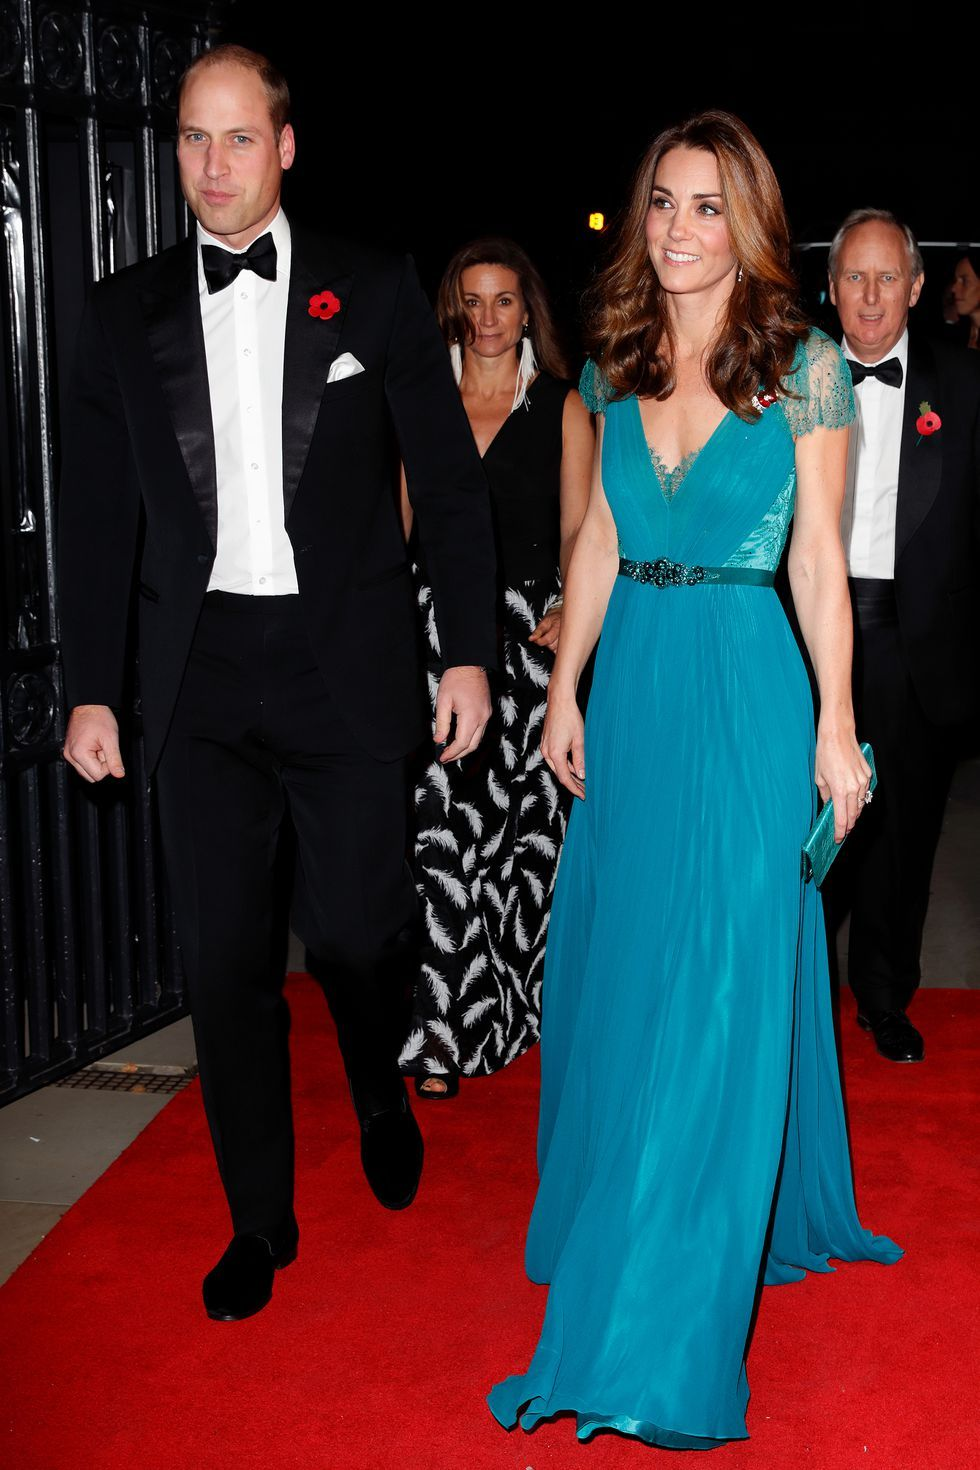 5a61364ef873 Kate Middleton's Best Style Moments - The Duchess of Cambridge's Most  Fashionable Outfits